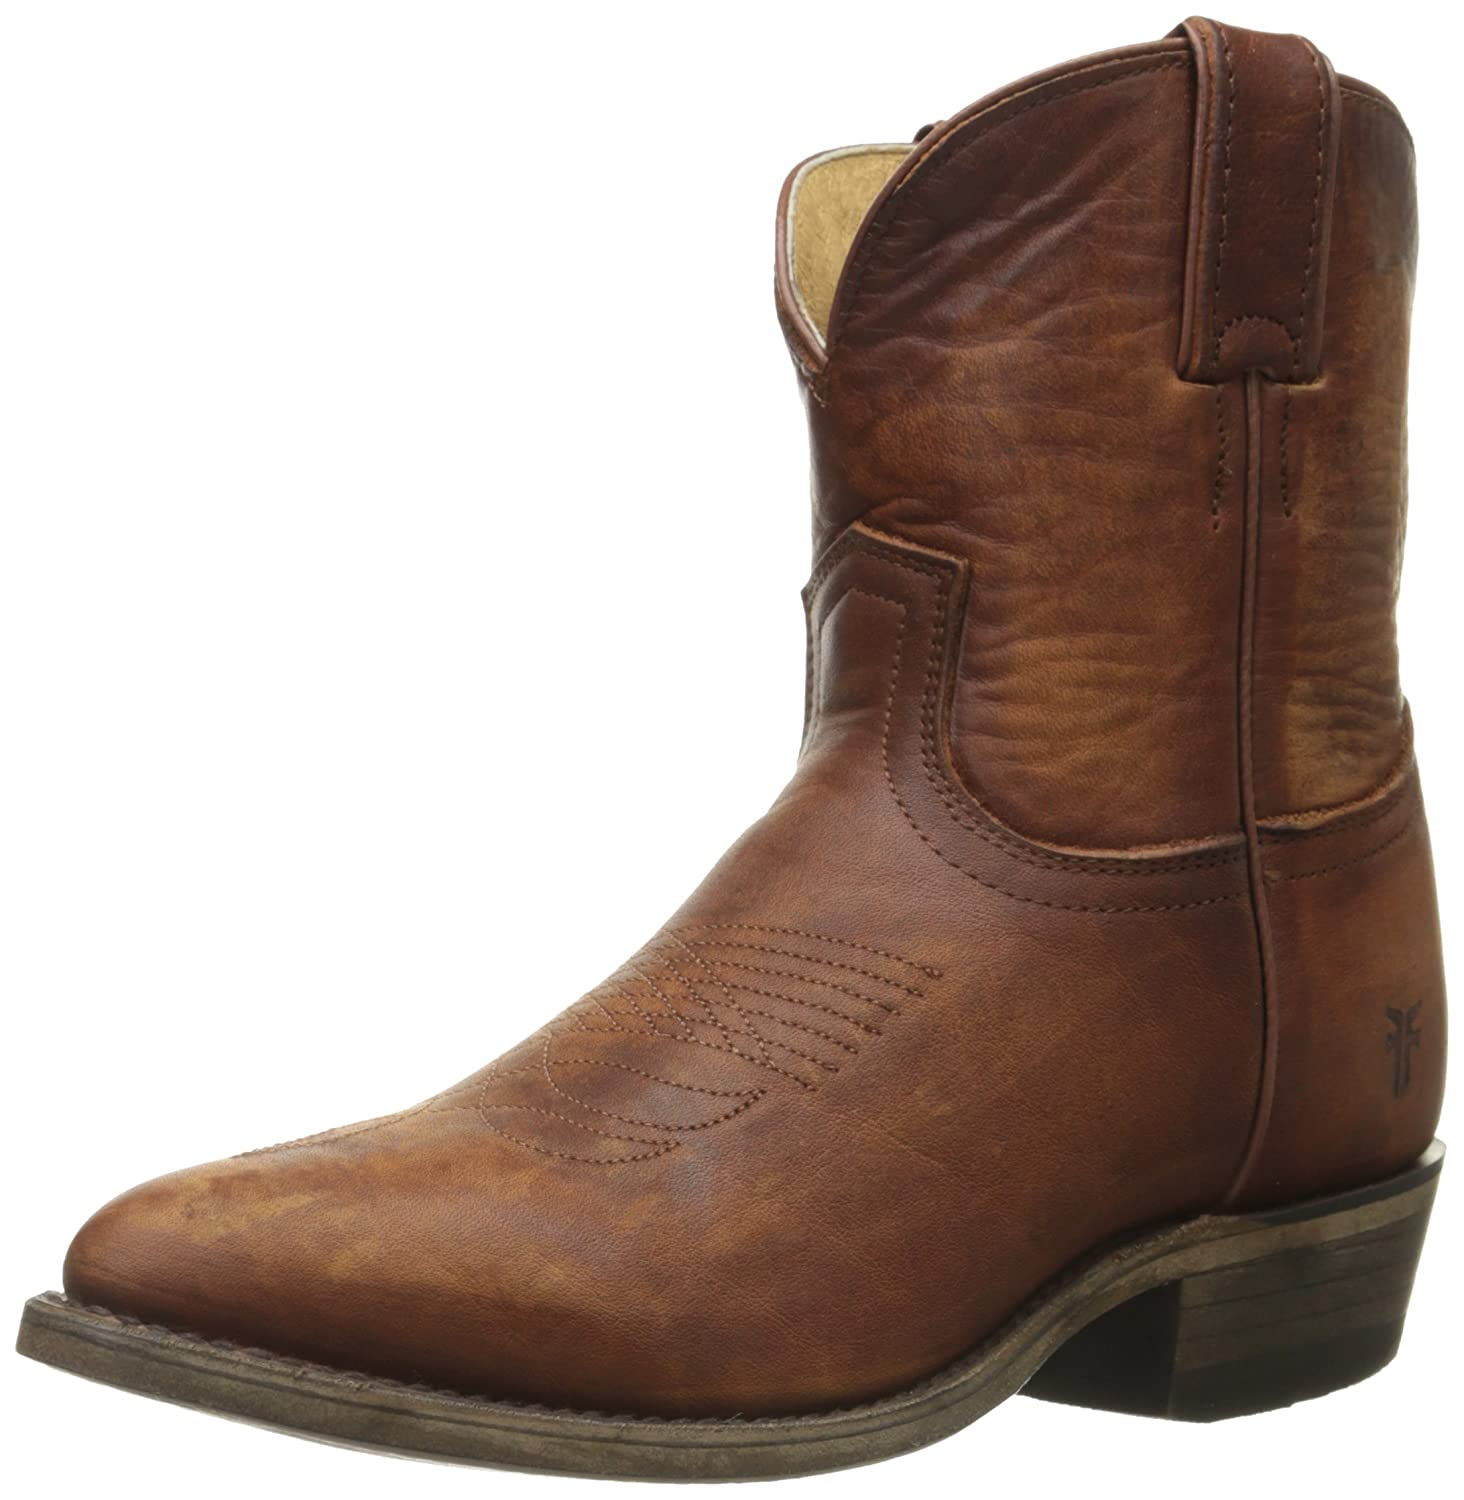 FRYE Women's Billy Short-Wshovn Western Boot B00R550M92 6 B(M) US|Cognac